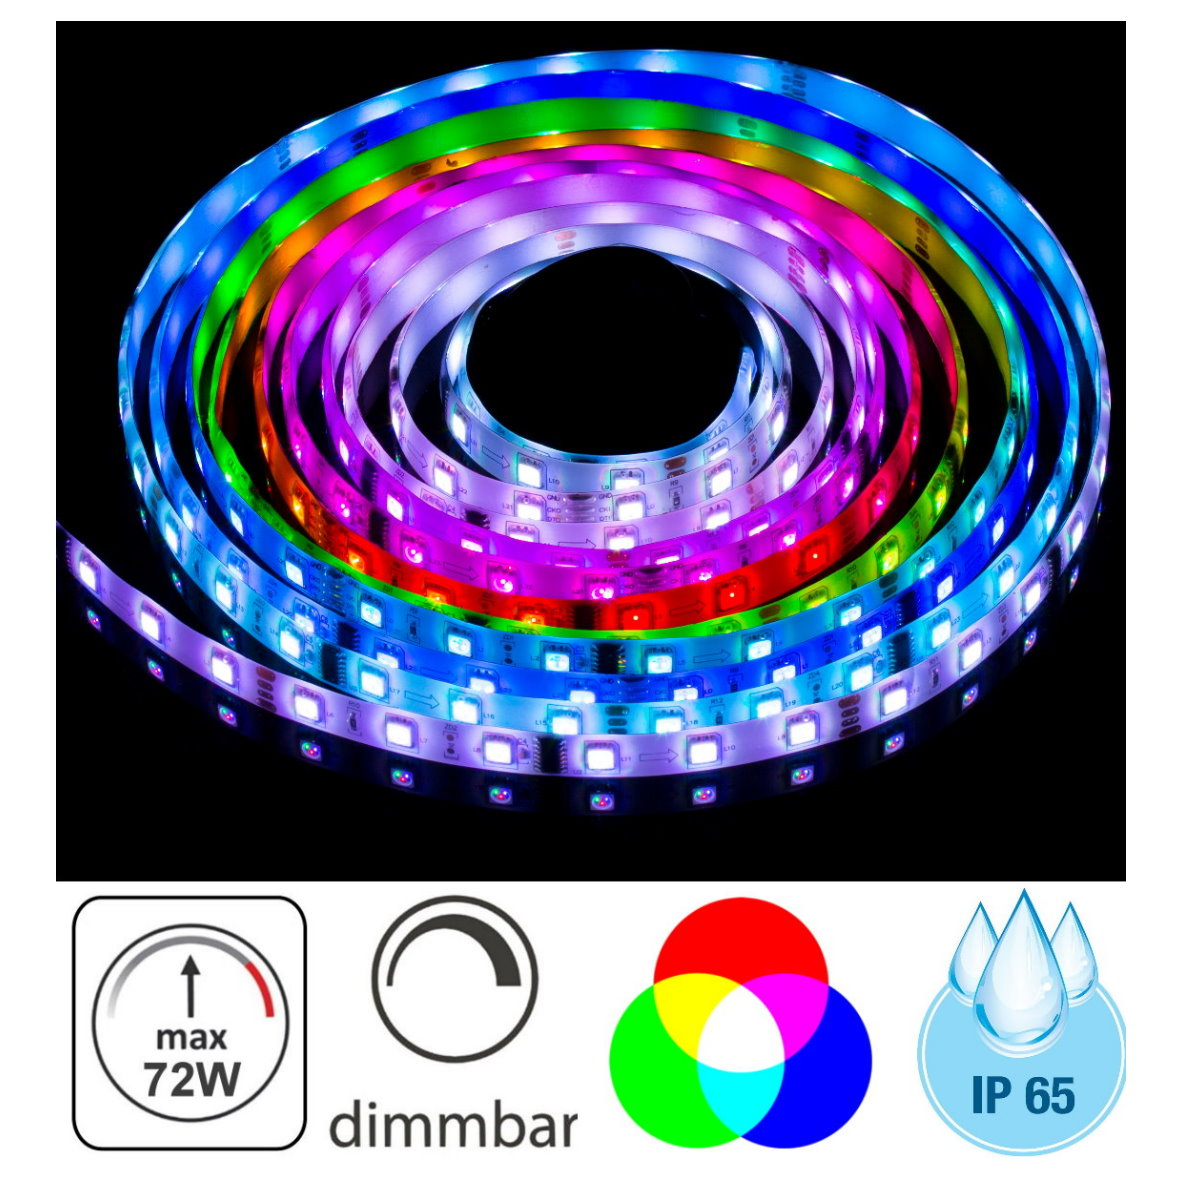 4 98 eur m led rgb lichtband 5m 72w ip65 dimmbar. Black Bedroom Furniture Sets. Home Design Ideas